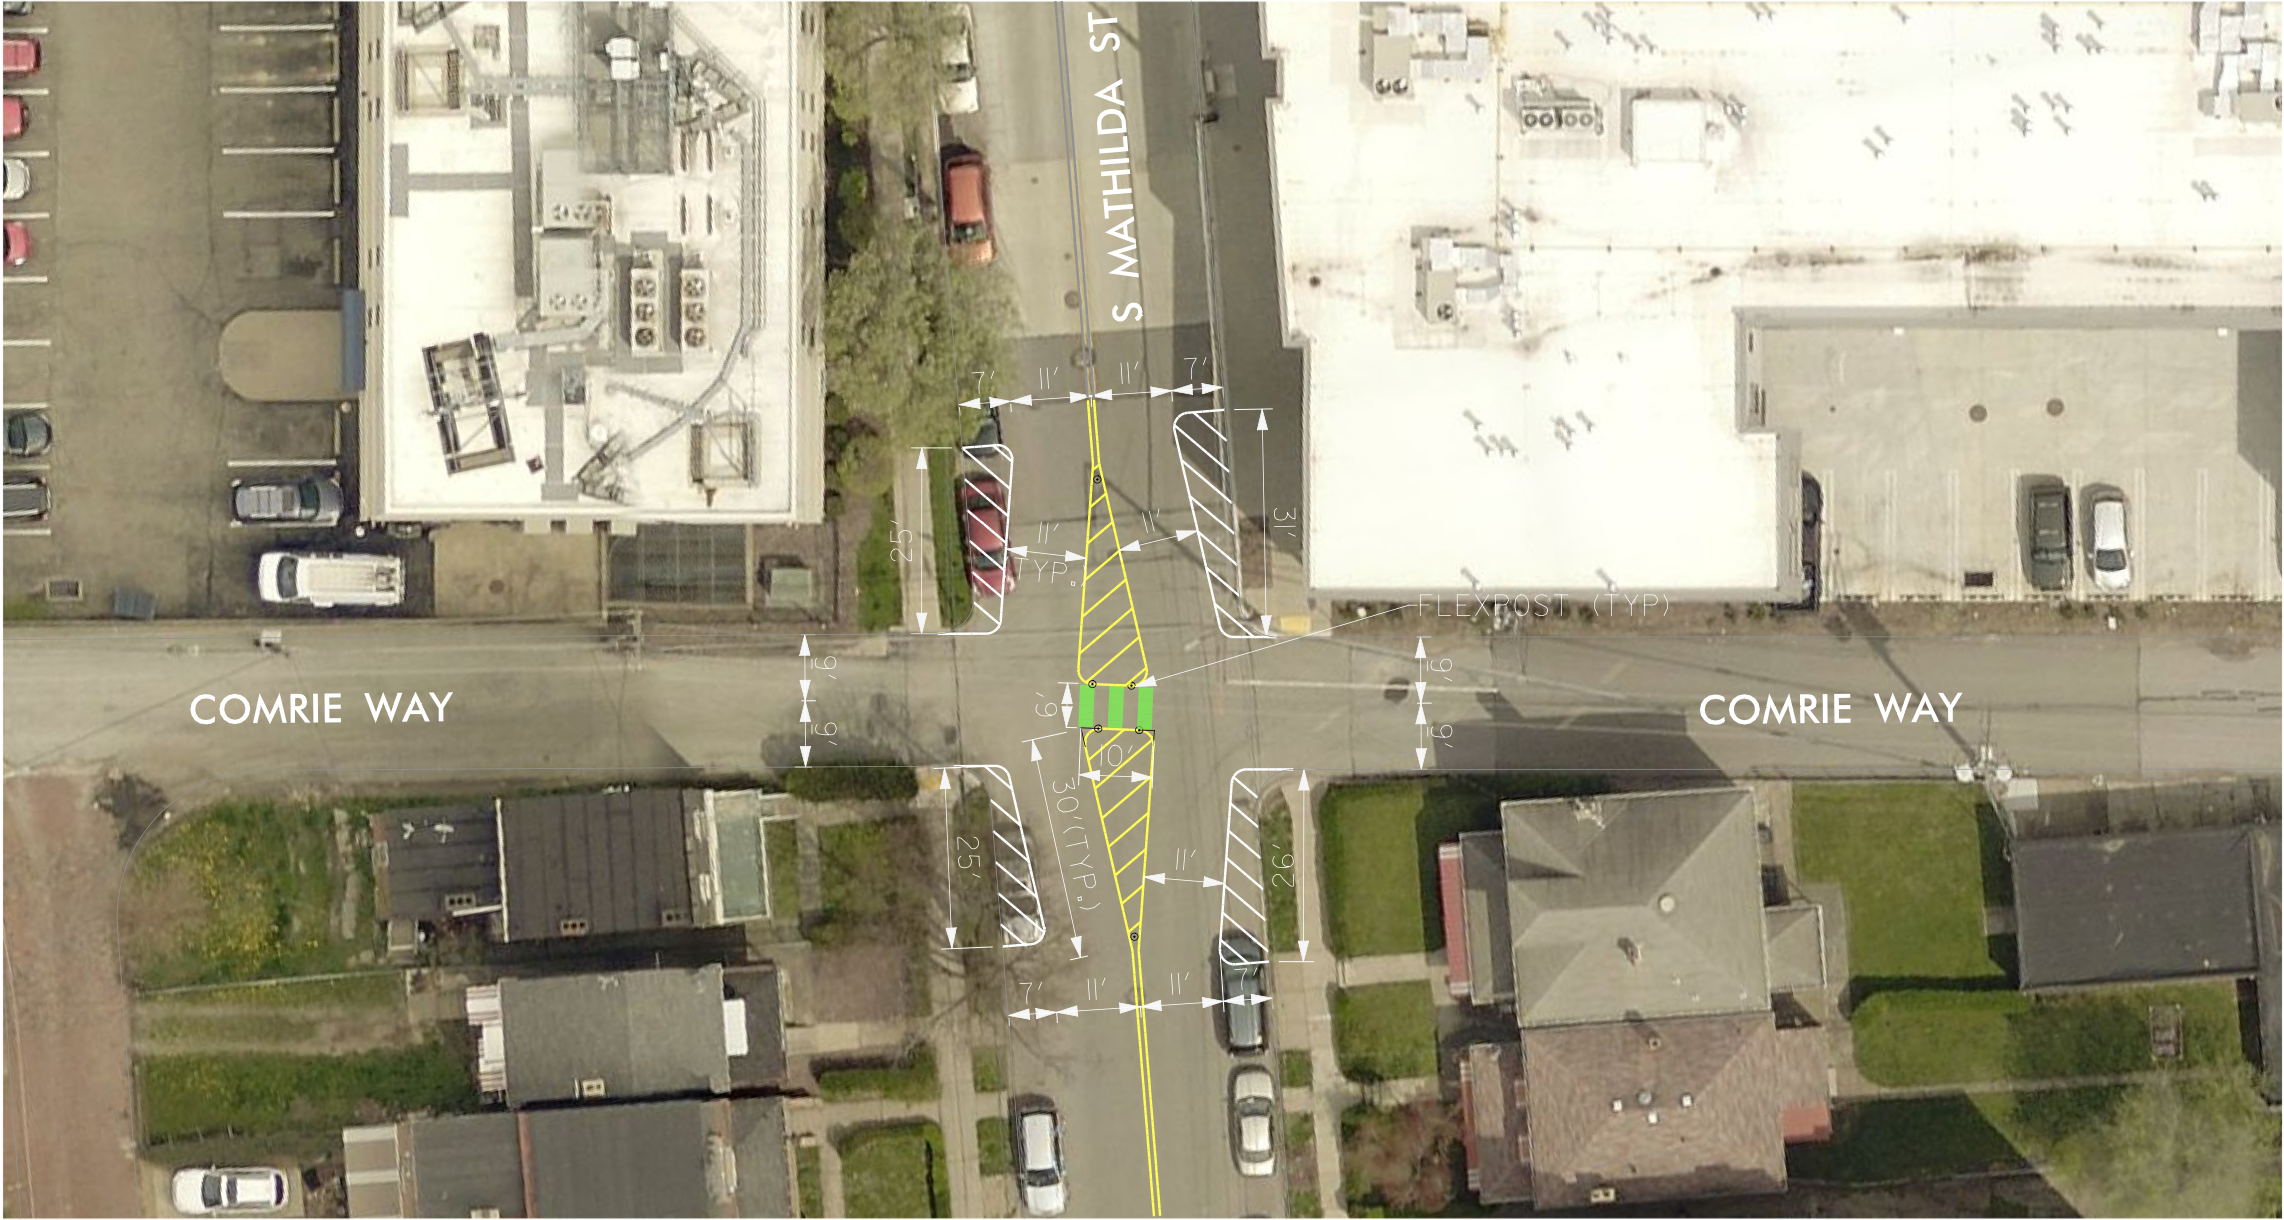 image of an overhead of comrie way and mathilda st showing the traffic diverter. cars on comrie way must turn and cannot continue through